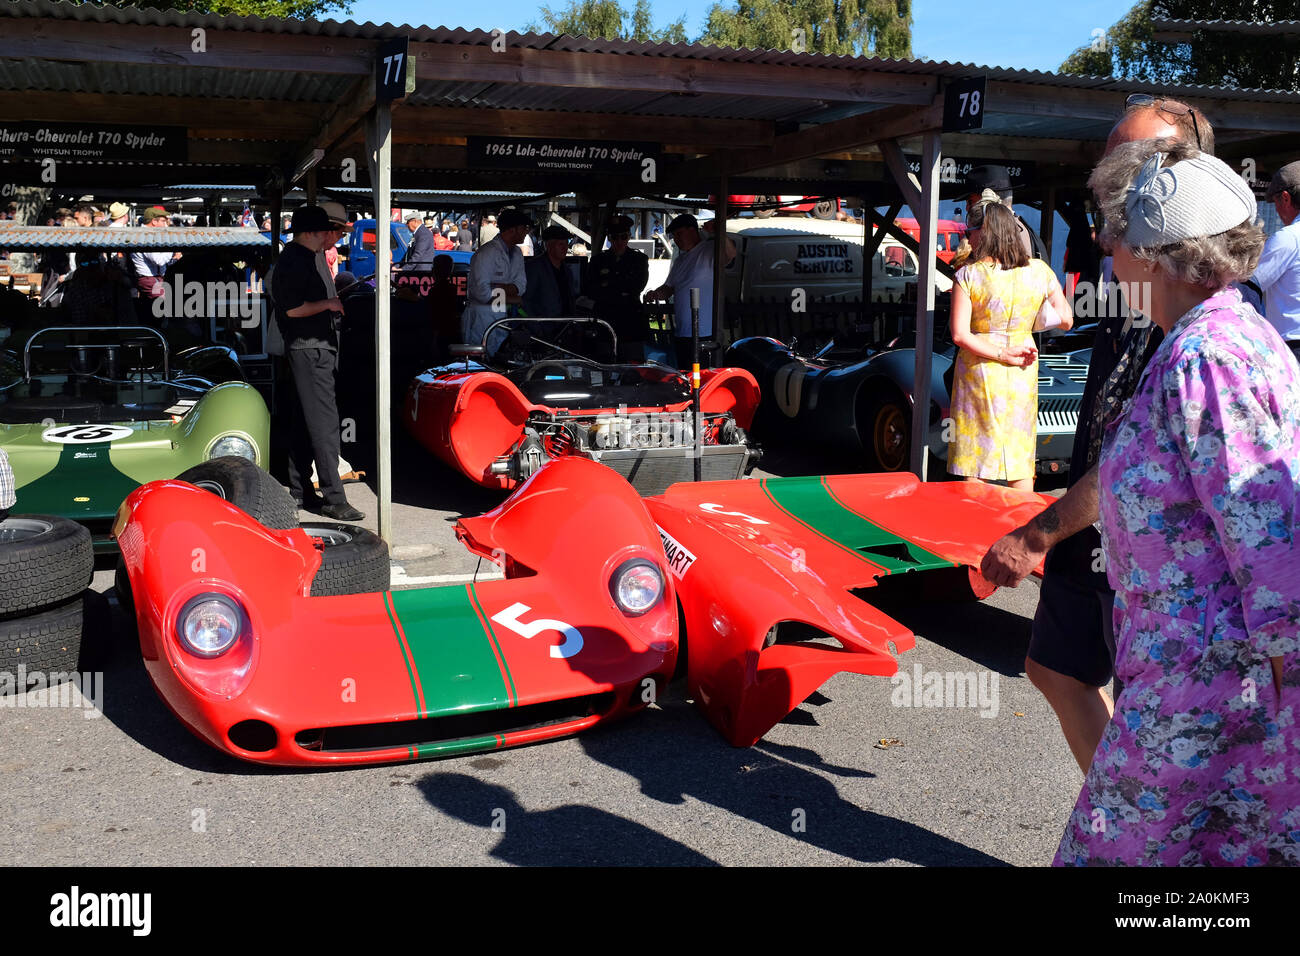 September 2019 - Classic Lola Chevrolet race car in the paddock at the Goodwood Revival meeting Stock Photo